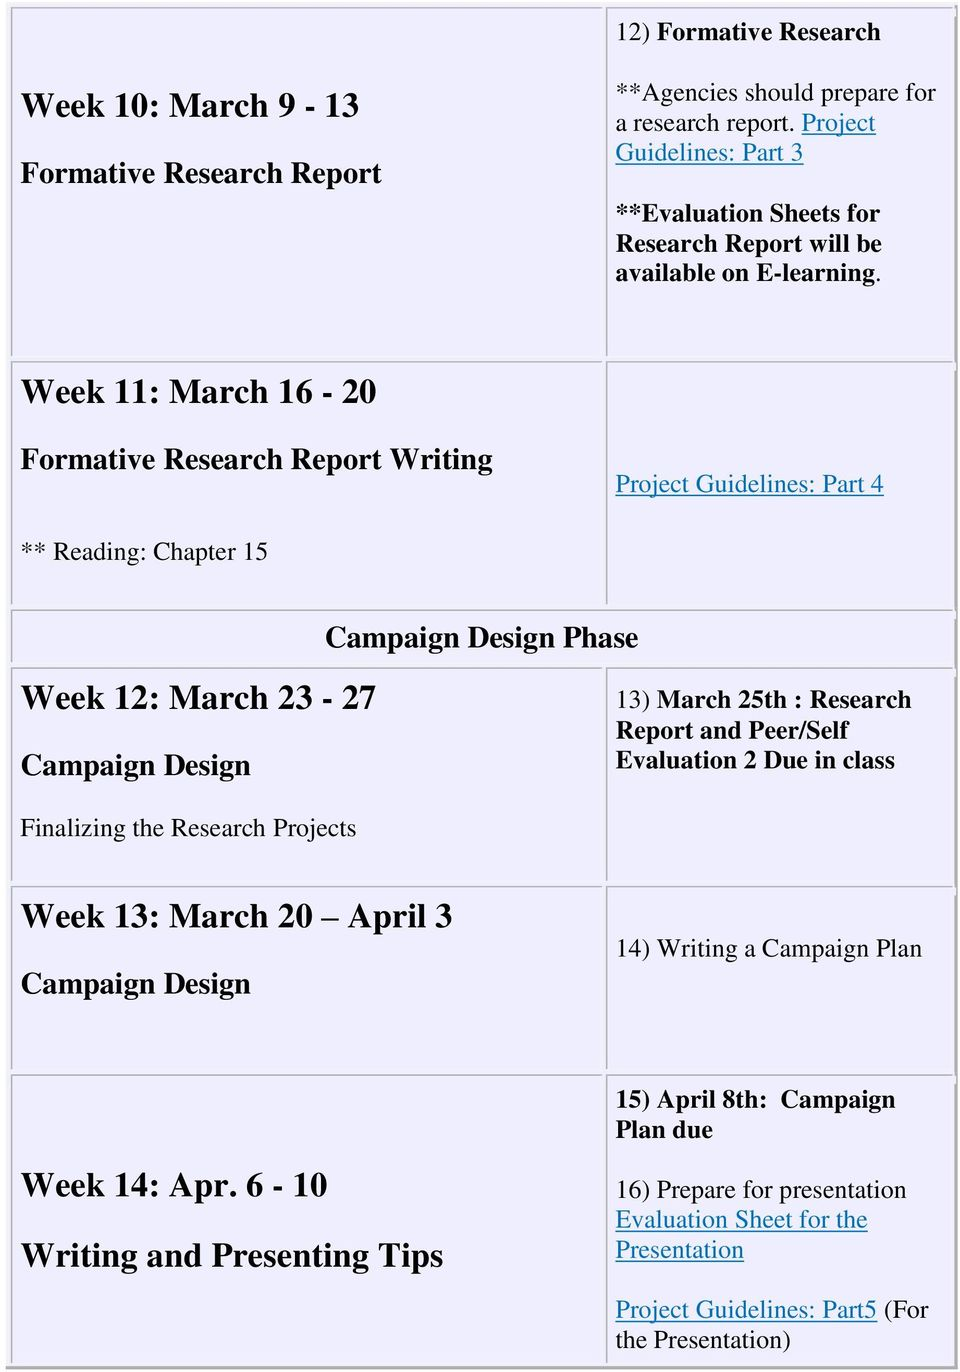 Week 11: March 16-20 Formative Research Report Writing Project Guidelines: Part 4 ** Reading: Chapter 15 Campaign Design Phase Week 12: March 23-27 Campaign Design 13) March 25th :